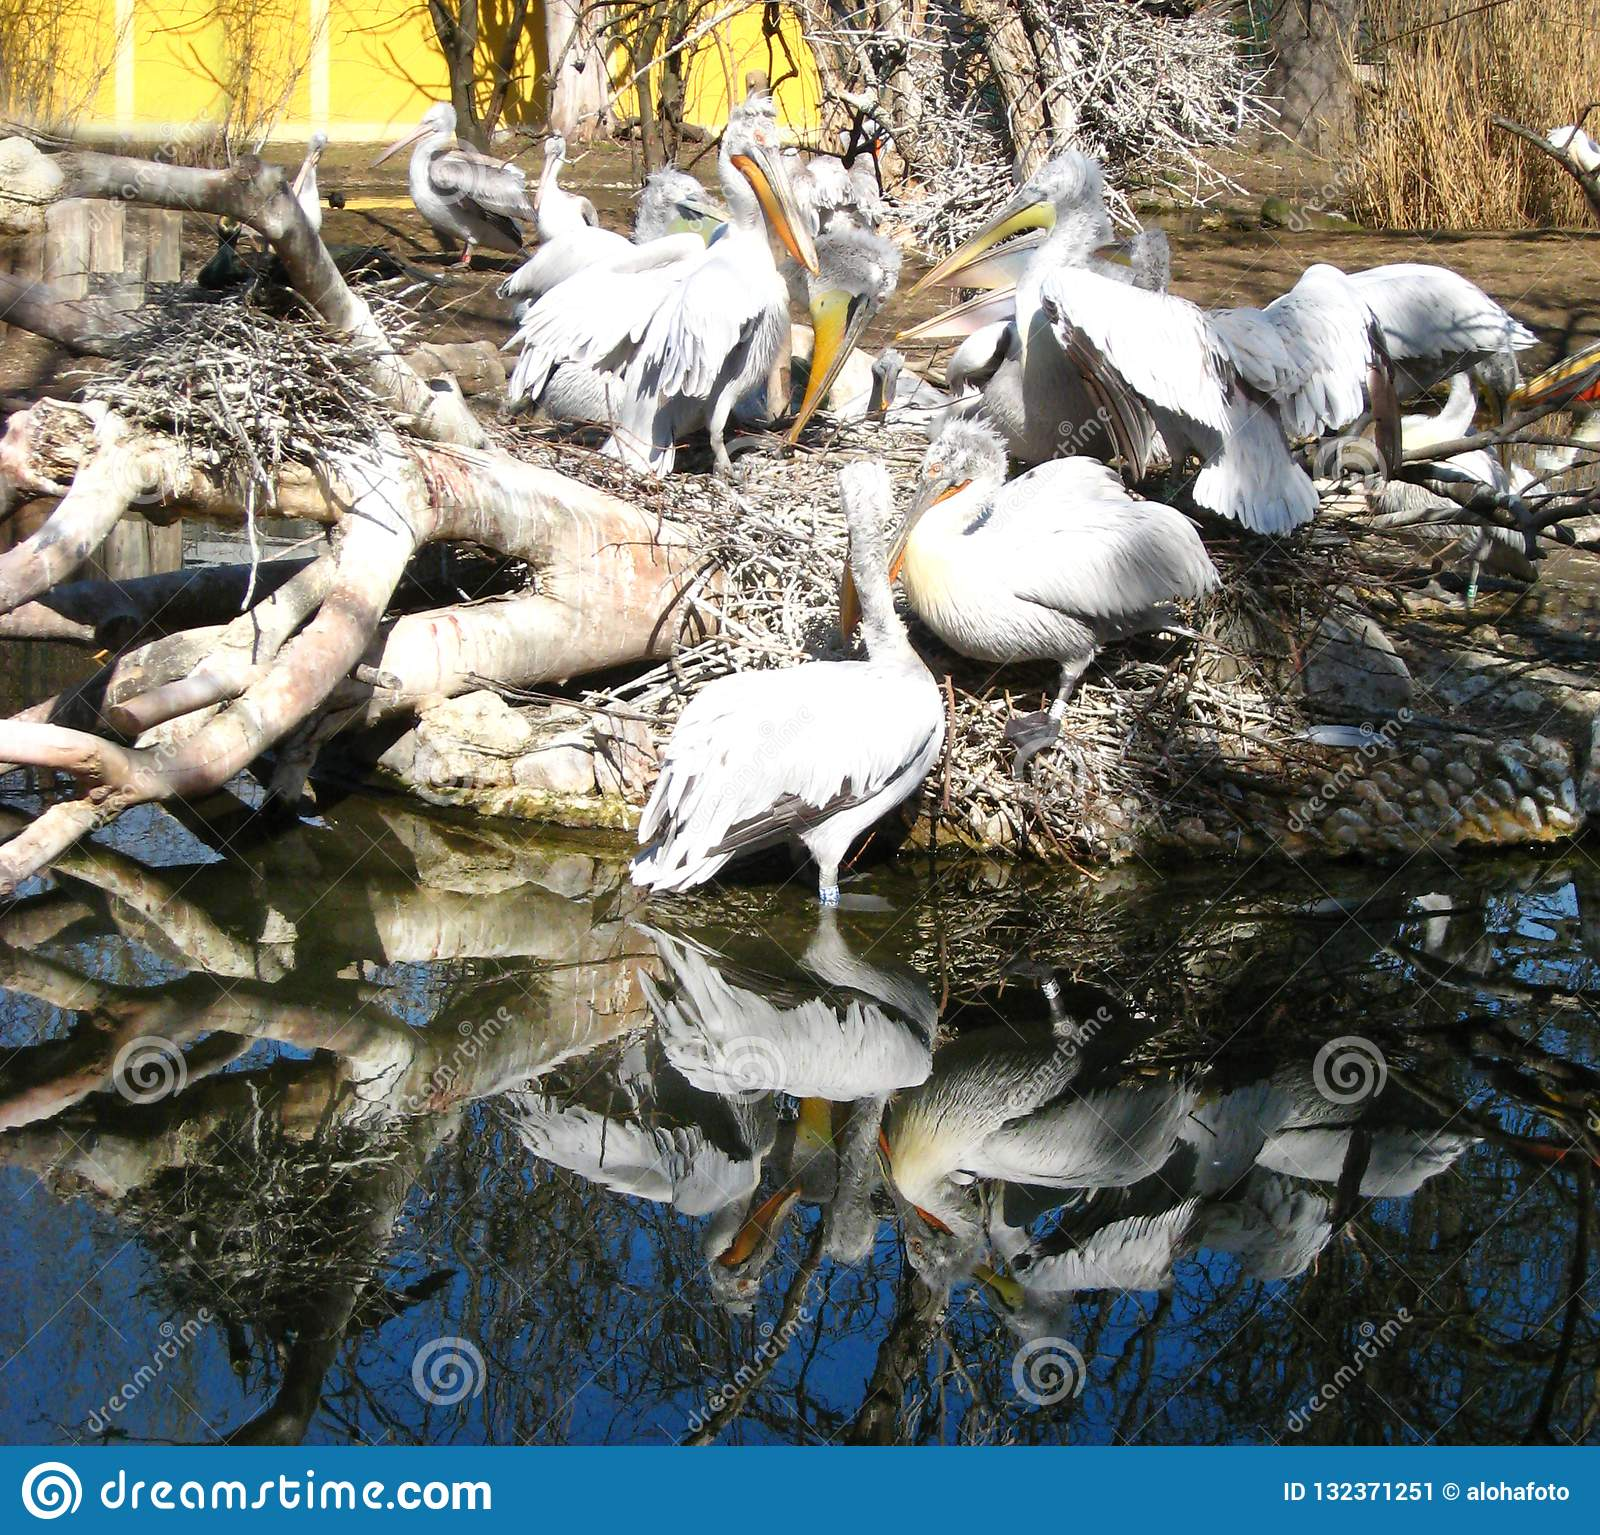 Many white black pelicans with yellow beaks are reflected in the deep blue water